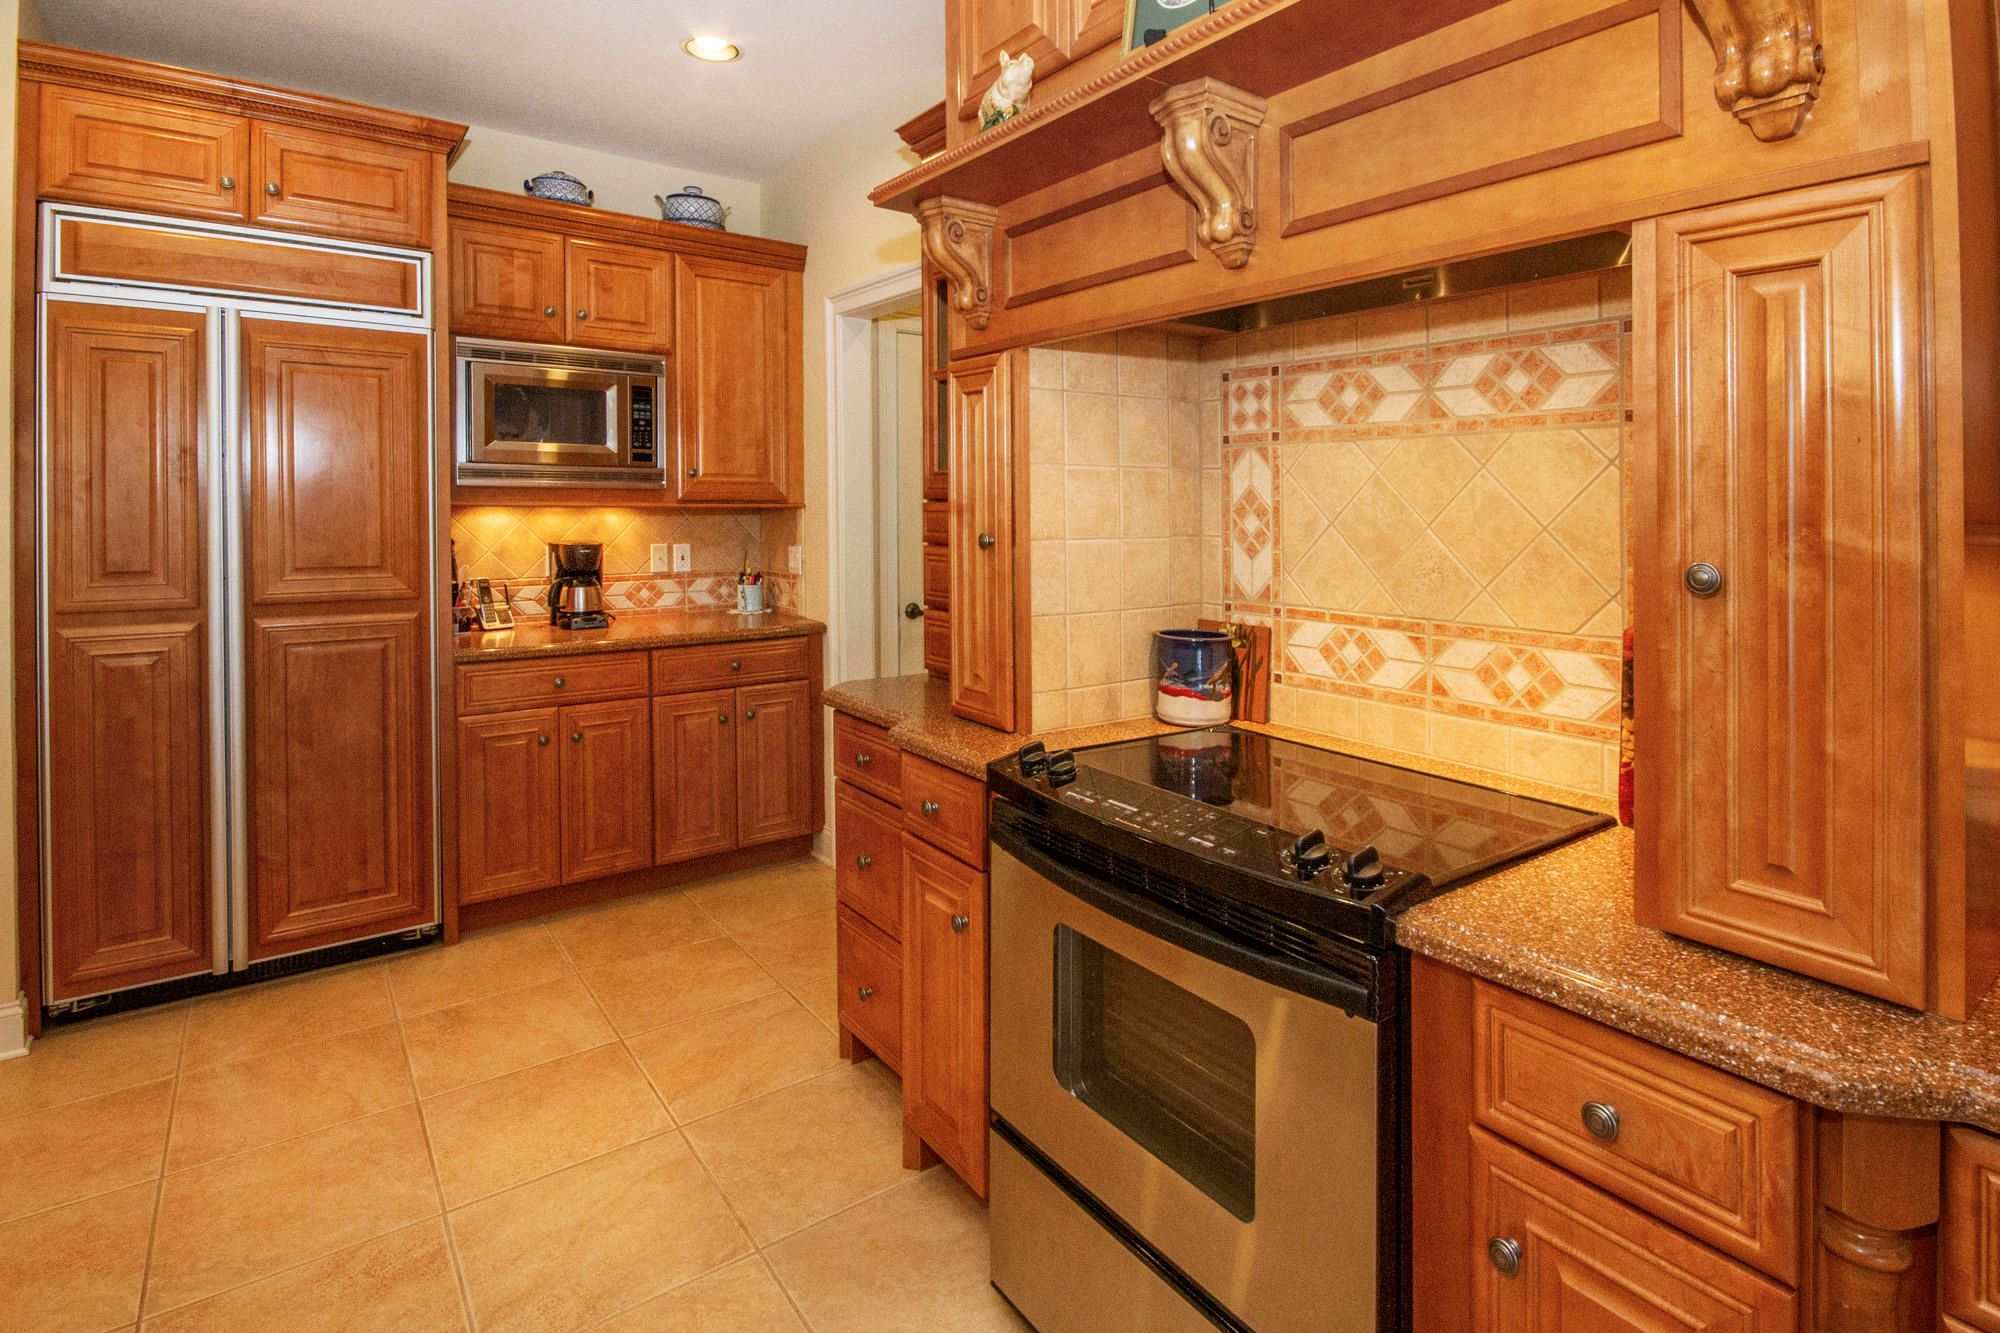 Cabinet Fronted Fridge & Coffee Nook!